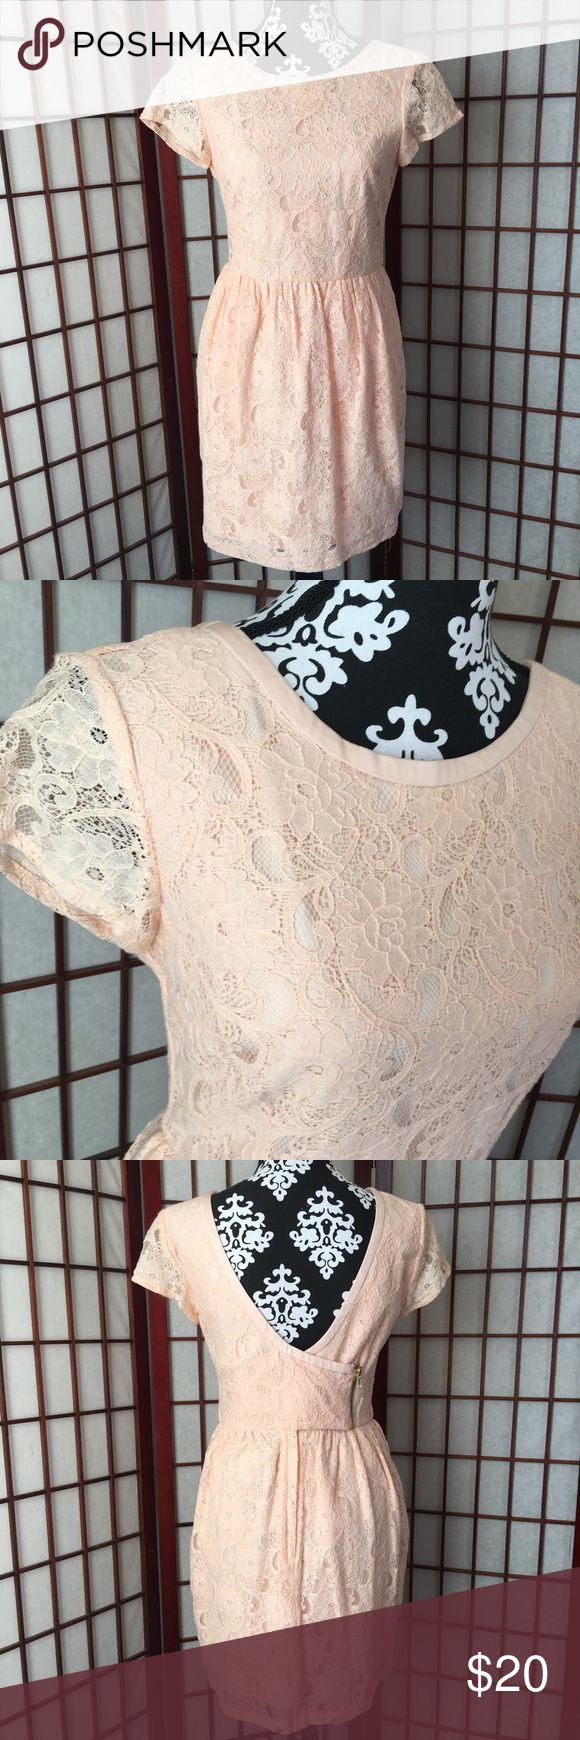 NWT H&M peach lace low back exposed zipper 8 NWT H&M peach lace dress low back with 2 zippers on the back with buttons from the conscious collection size 8 see measurements in pictures. Beautiful dress! H&M Dresses